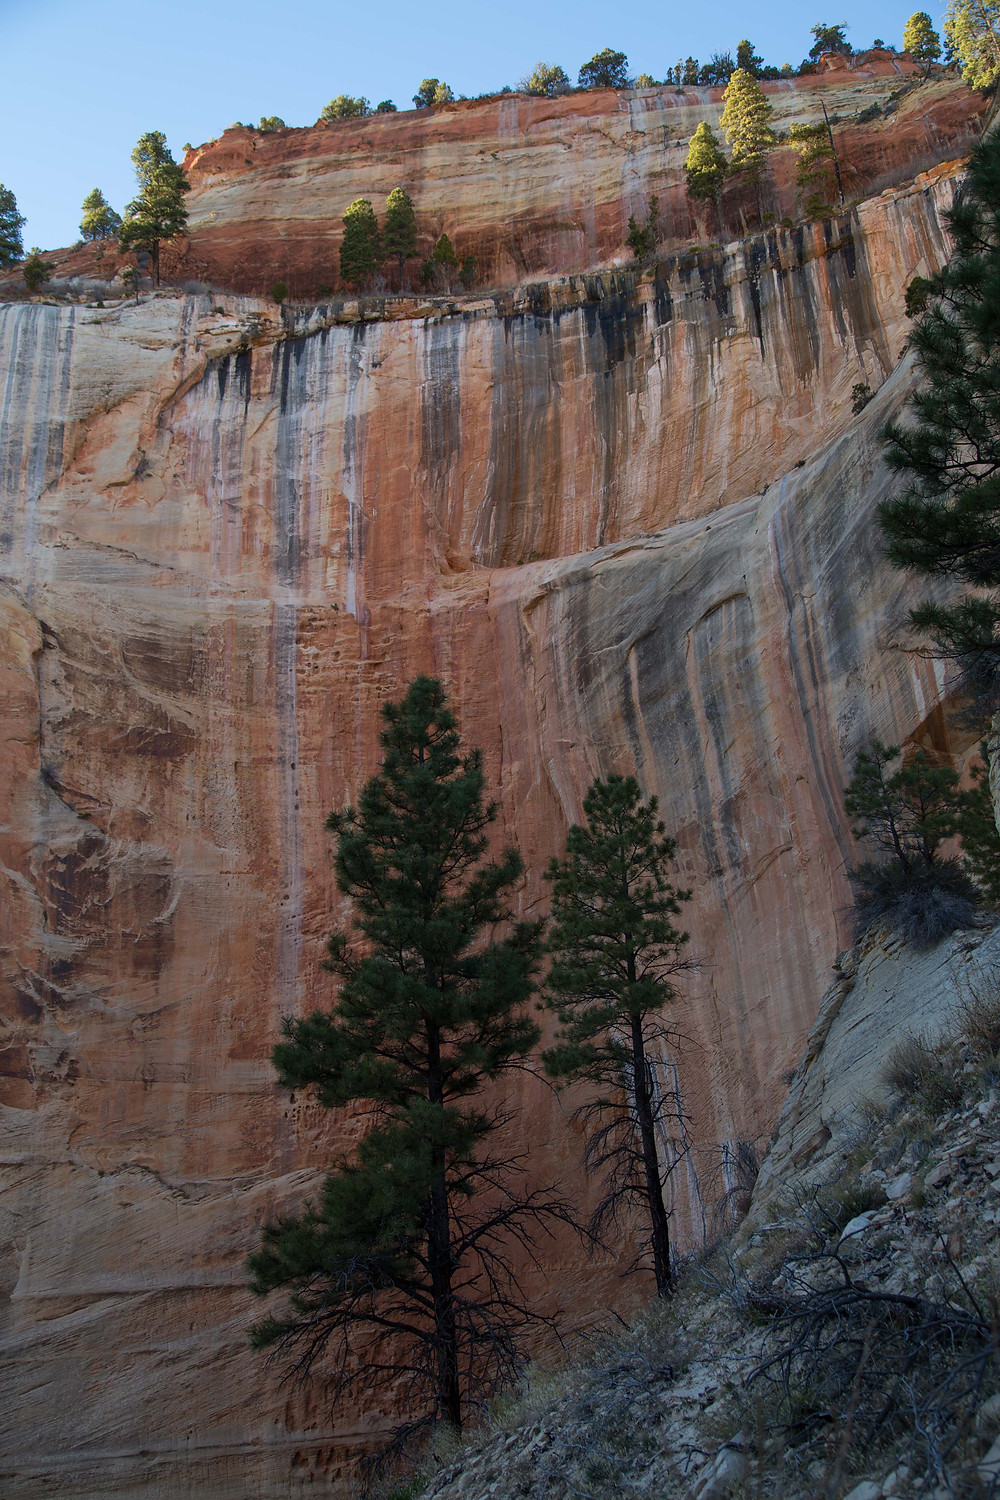 The West Rim Trail eventually descends into the main canyon of Zion National Park, Utah